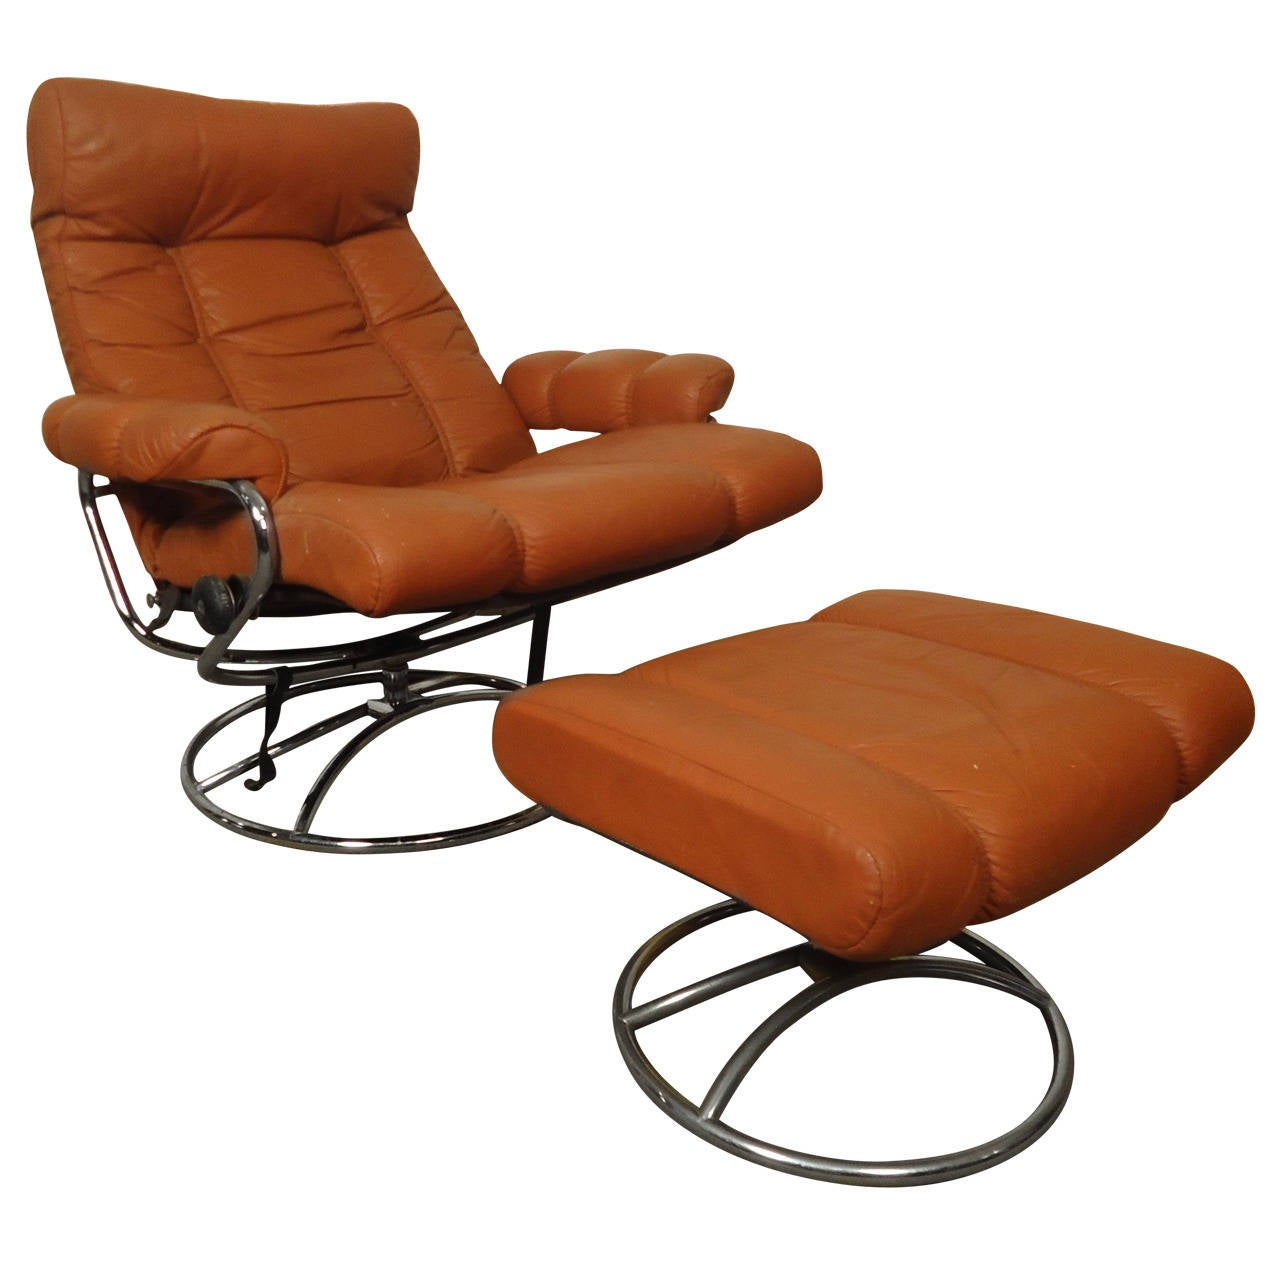 Mid Century Reclining Chair And Ottoman By Ekornes Stressless For Sale